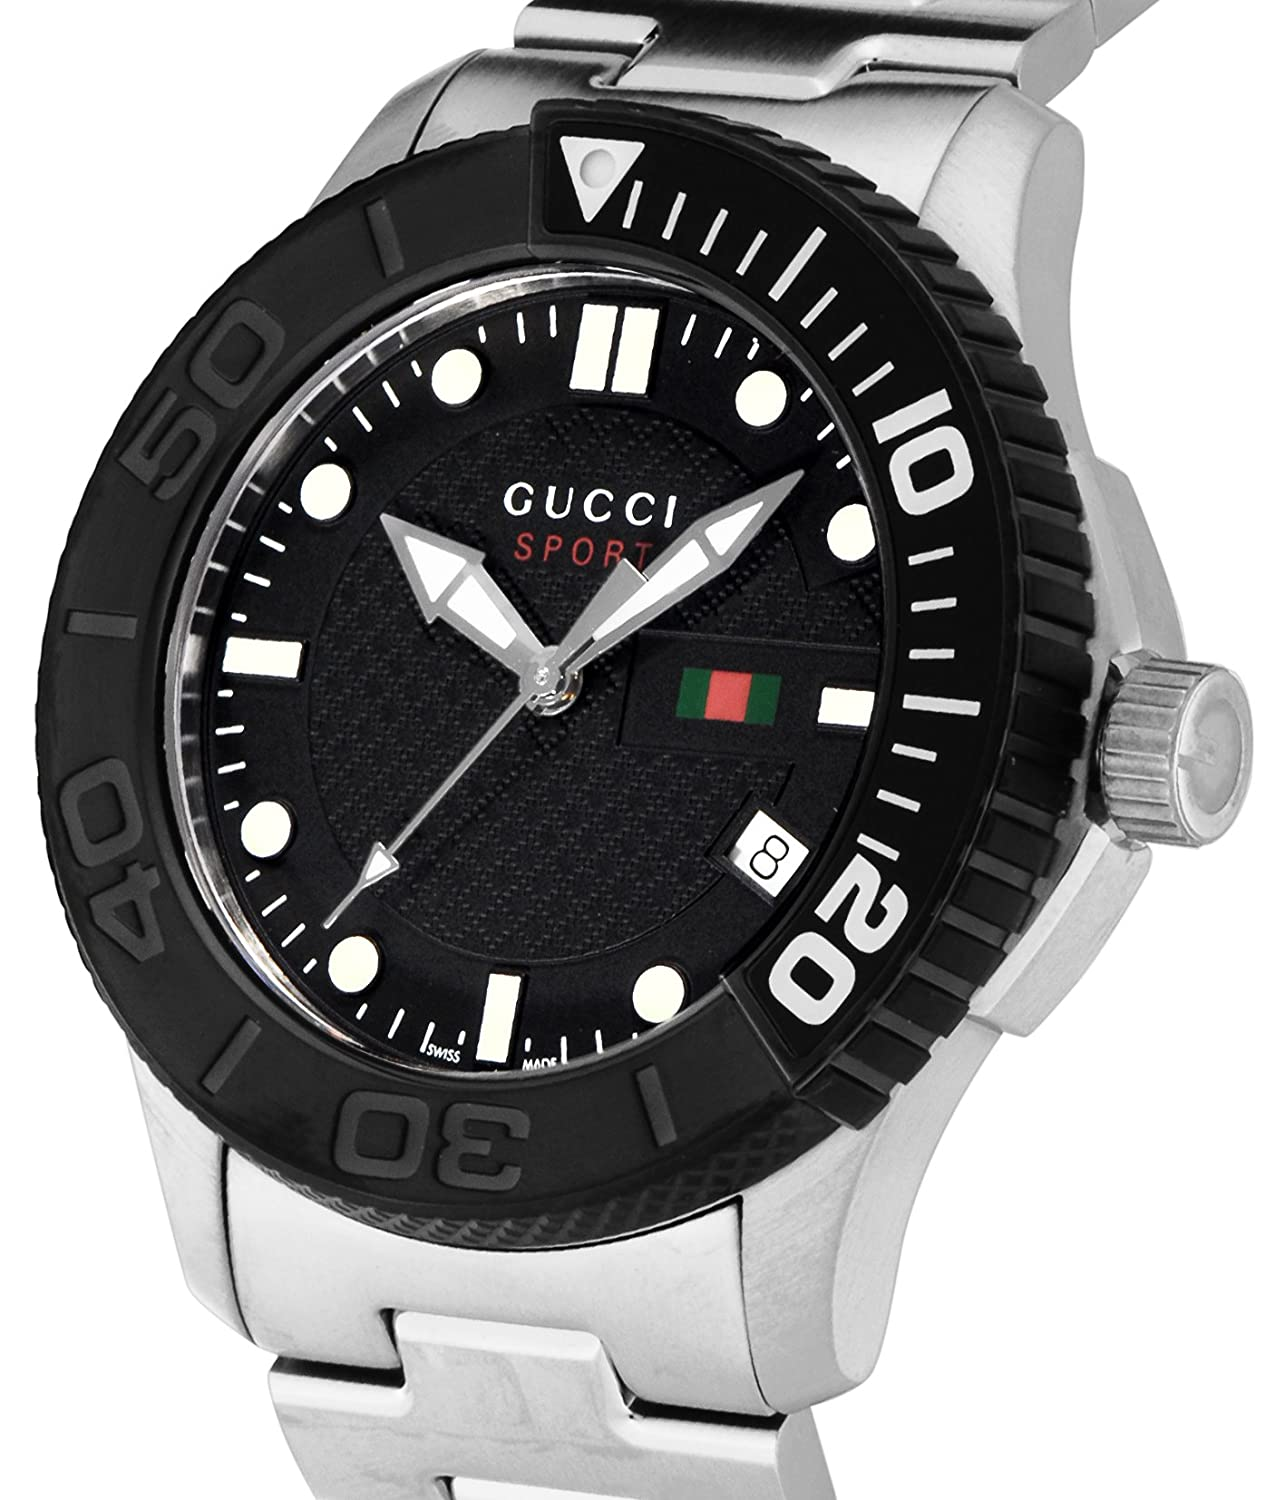 9f217c426b4 GUCCI watch G-TIMELESS YA126249 black dial 100m water resistant Date   Amazon.ca  Watches